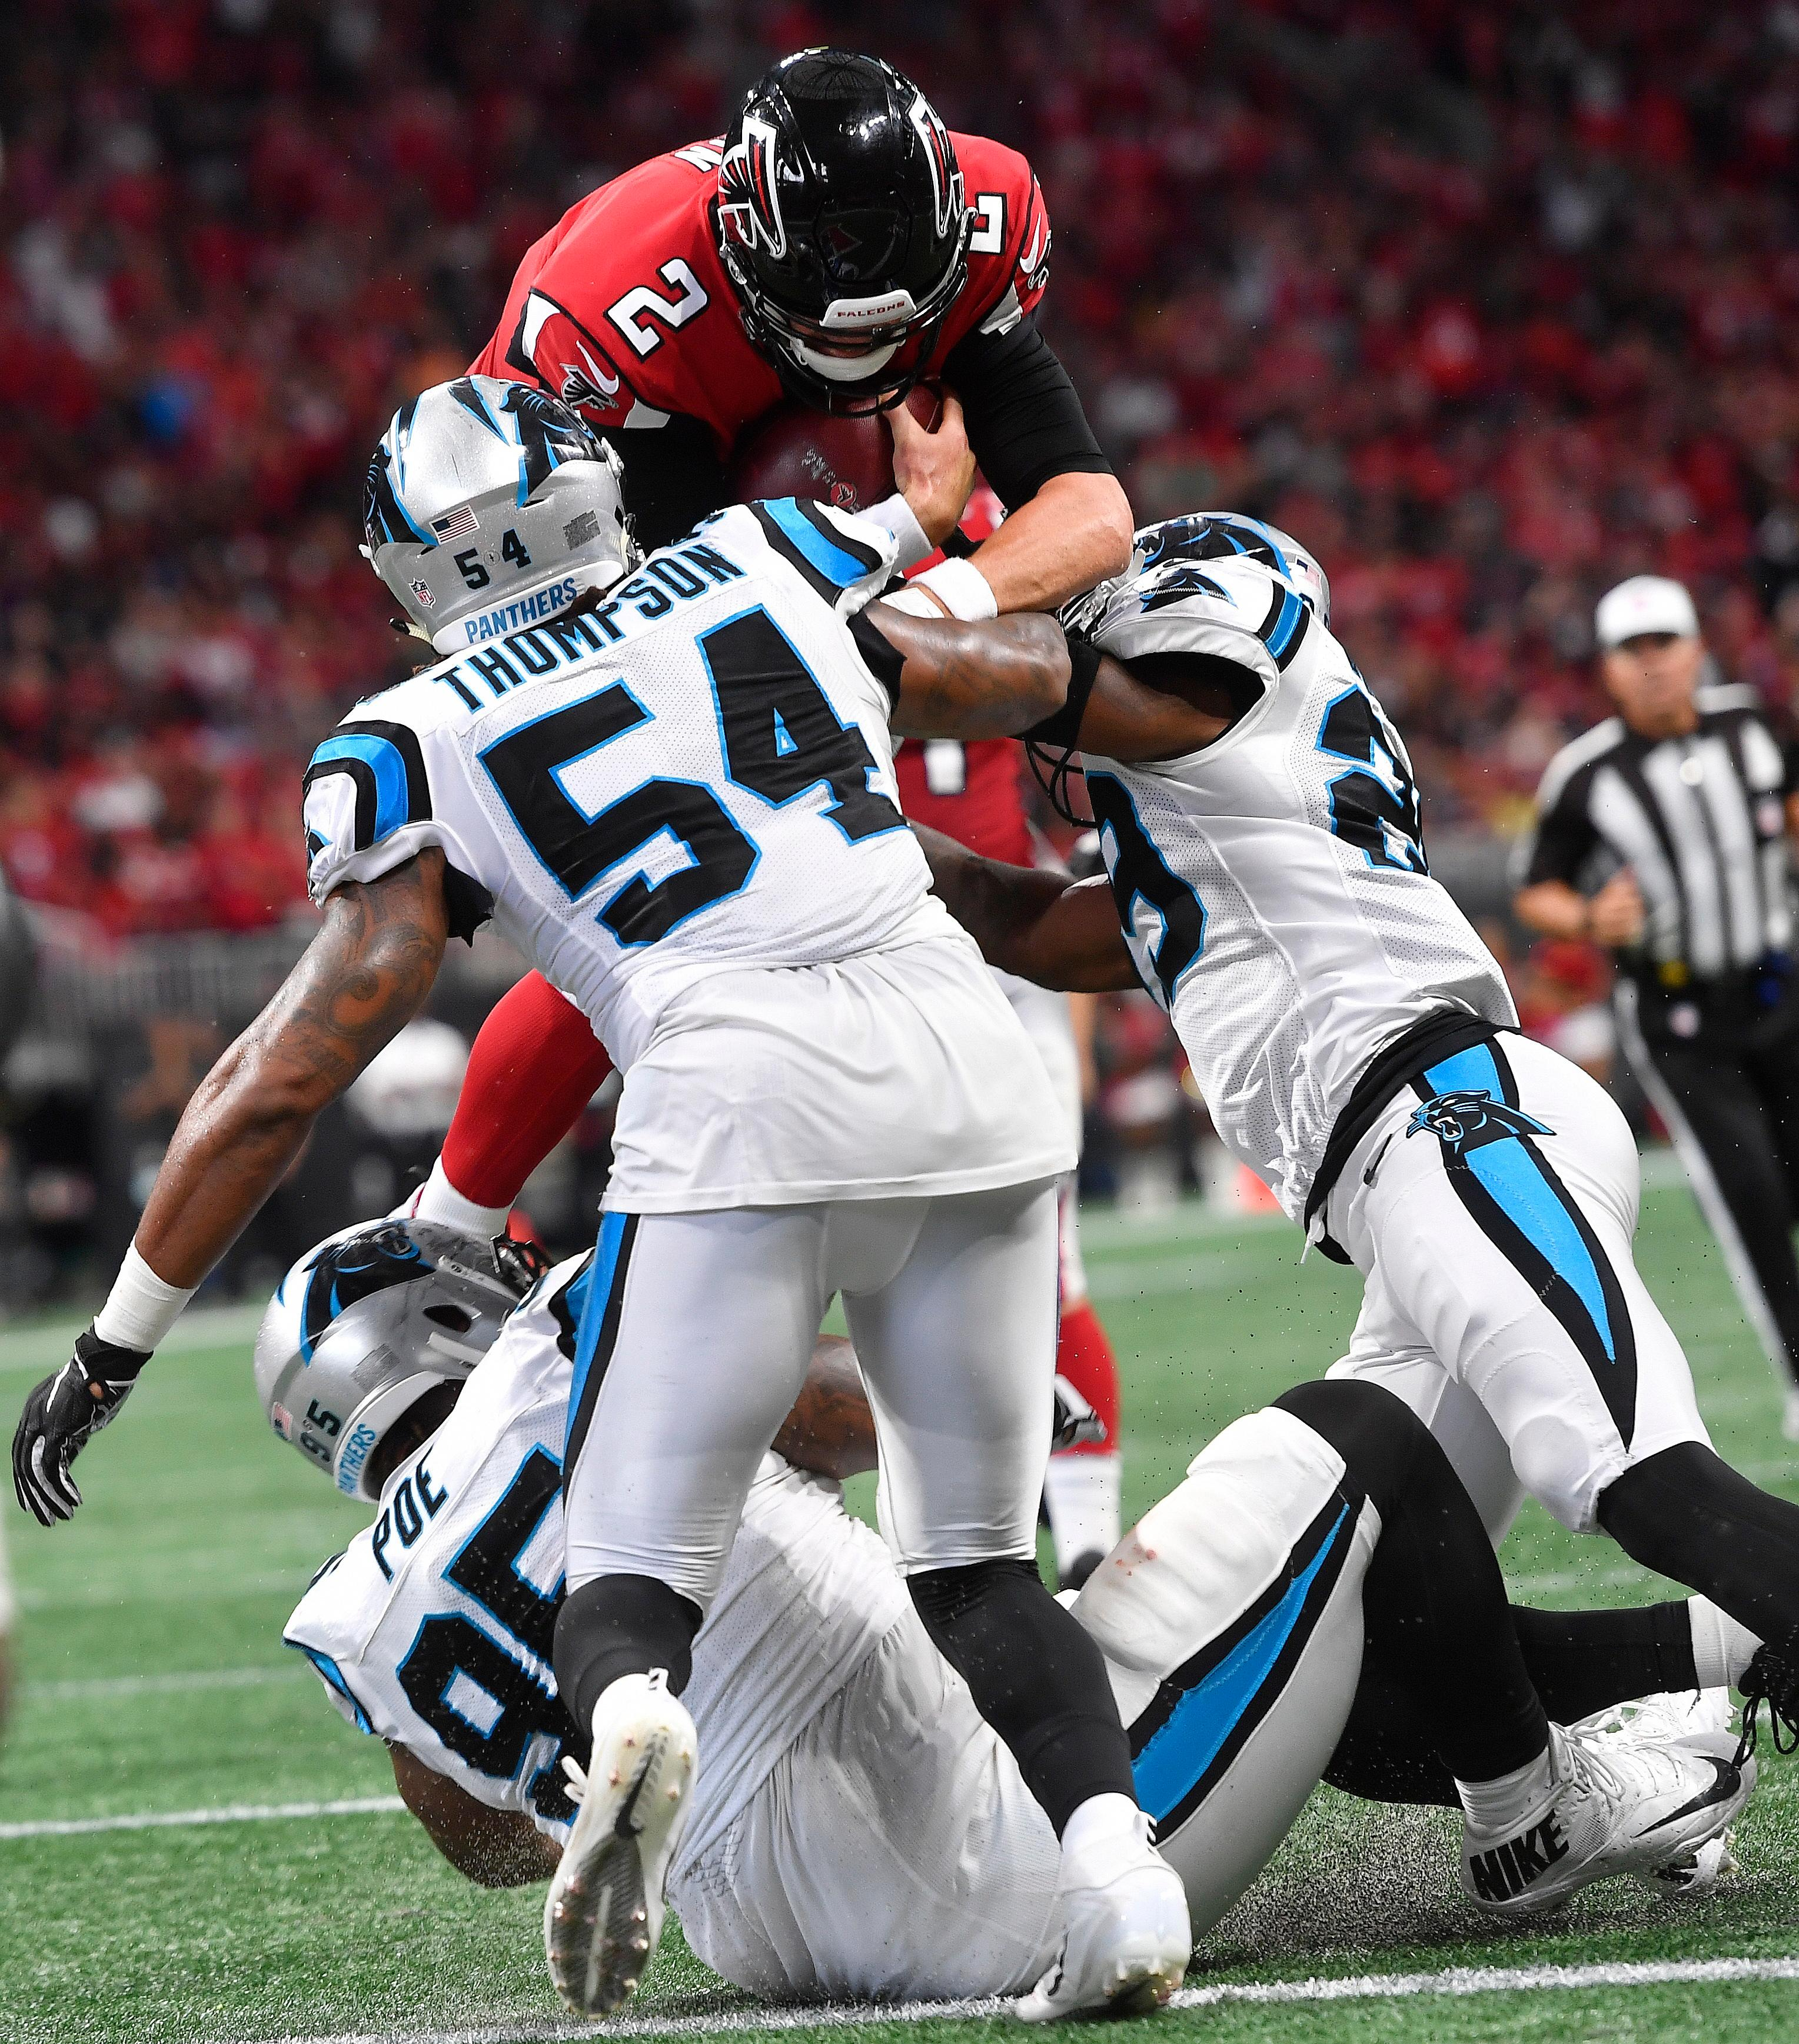 Atlanta Falcons quarterback Matt Ryan (2) leaps for a touchdown as Carolina Panthers linebacker Shaq Green-Thompson (54) defends during the second half of an NFL football game, Sunday, Sept. 16, 2018, in Atlanta. The Atlanta Falcons won 31-24. (AP Photo/John Amis)